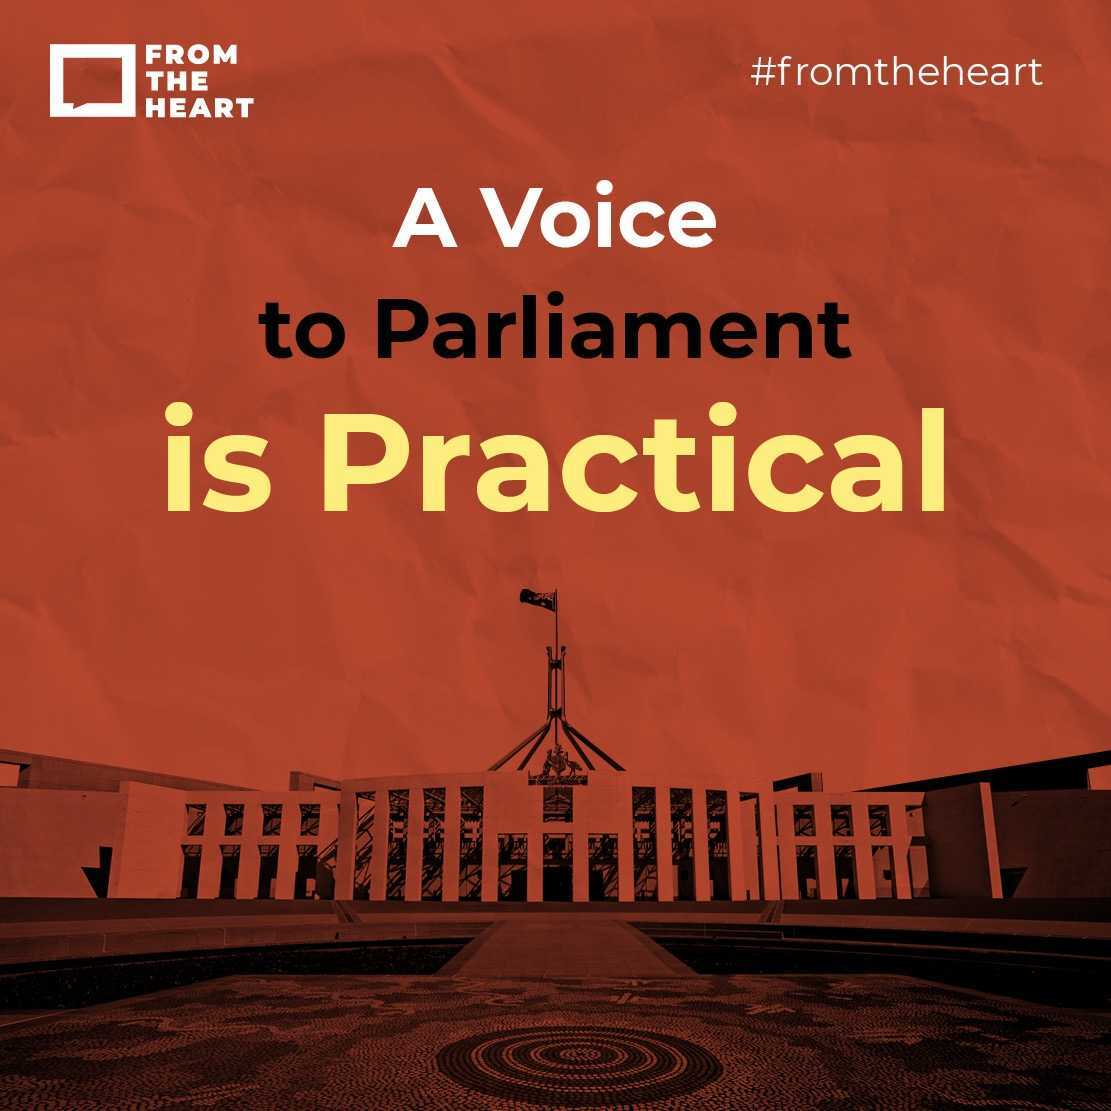 A Voice to Parliament is Practical Instagram template